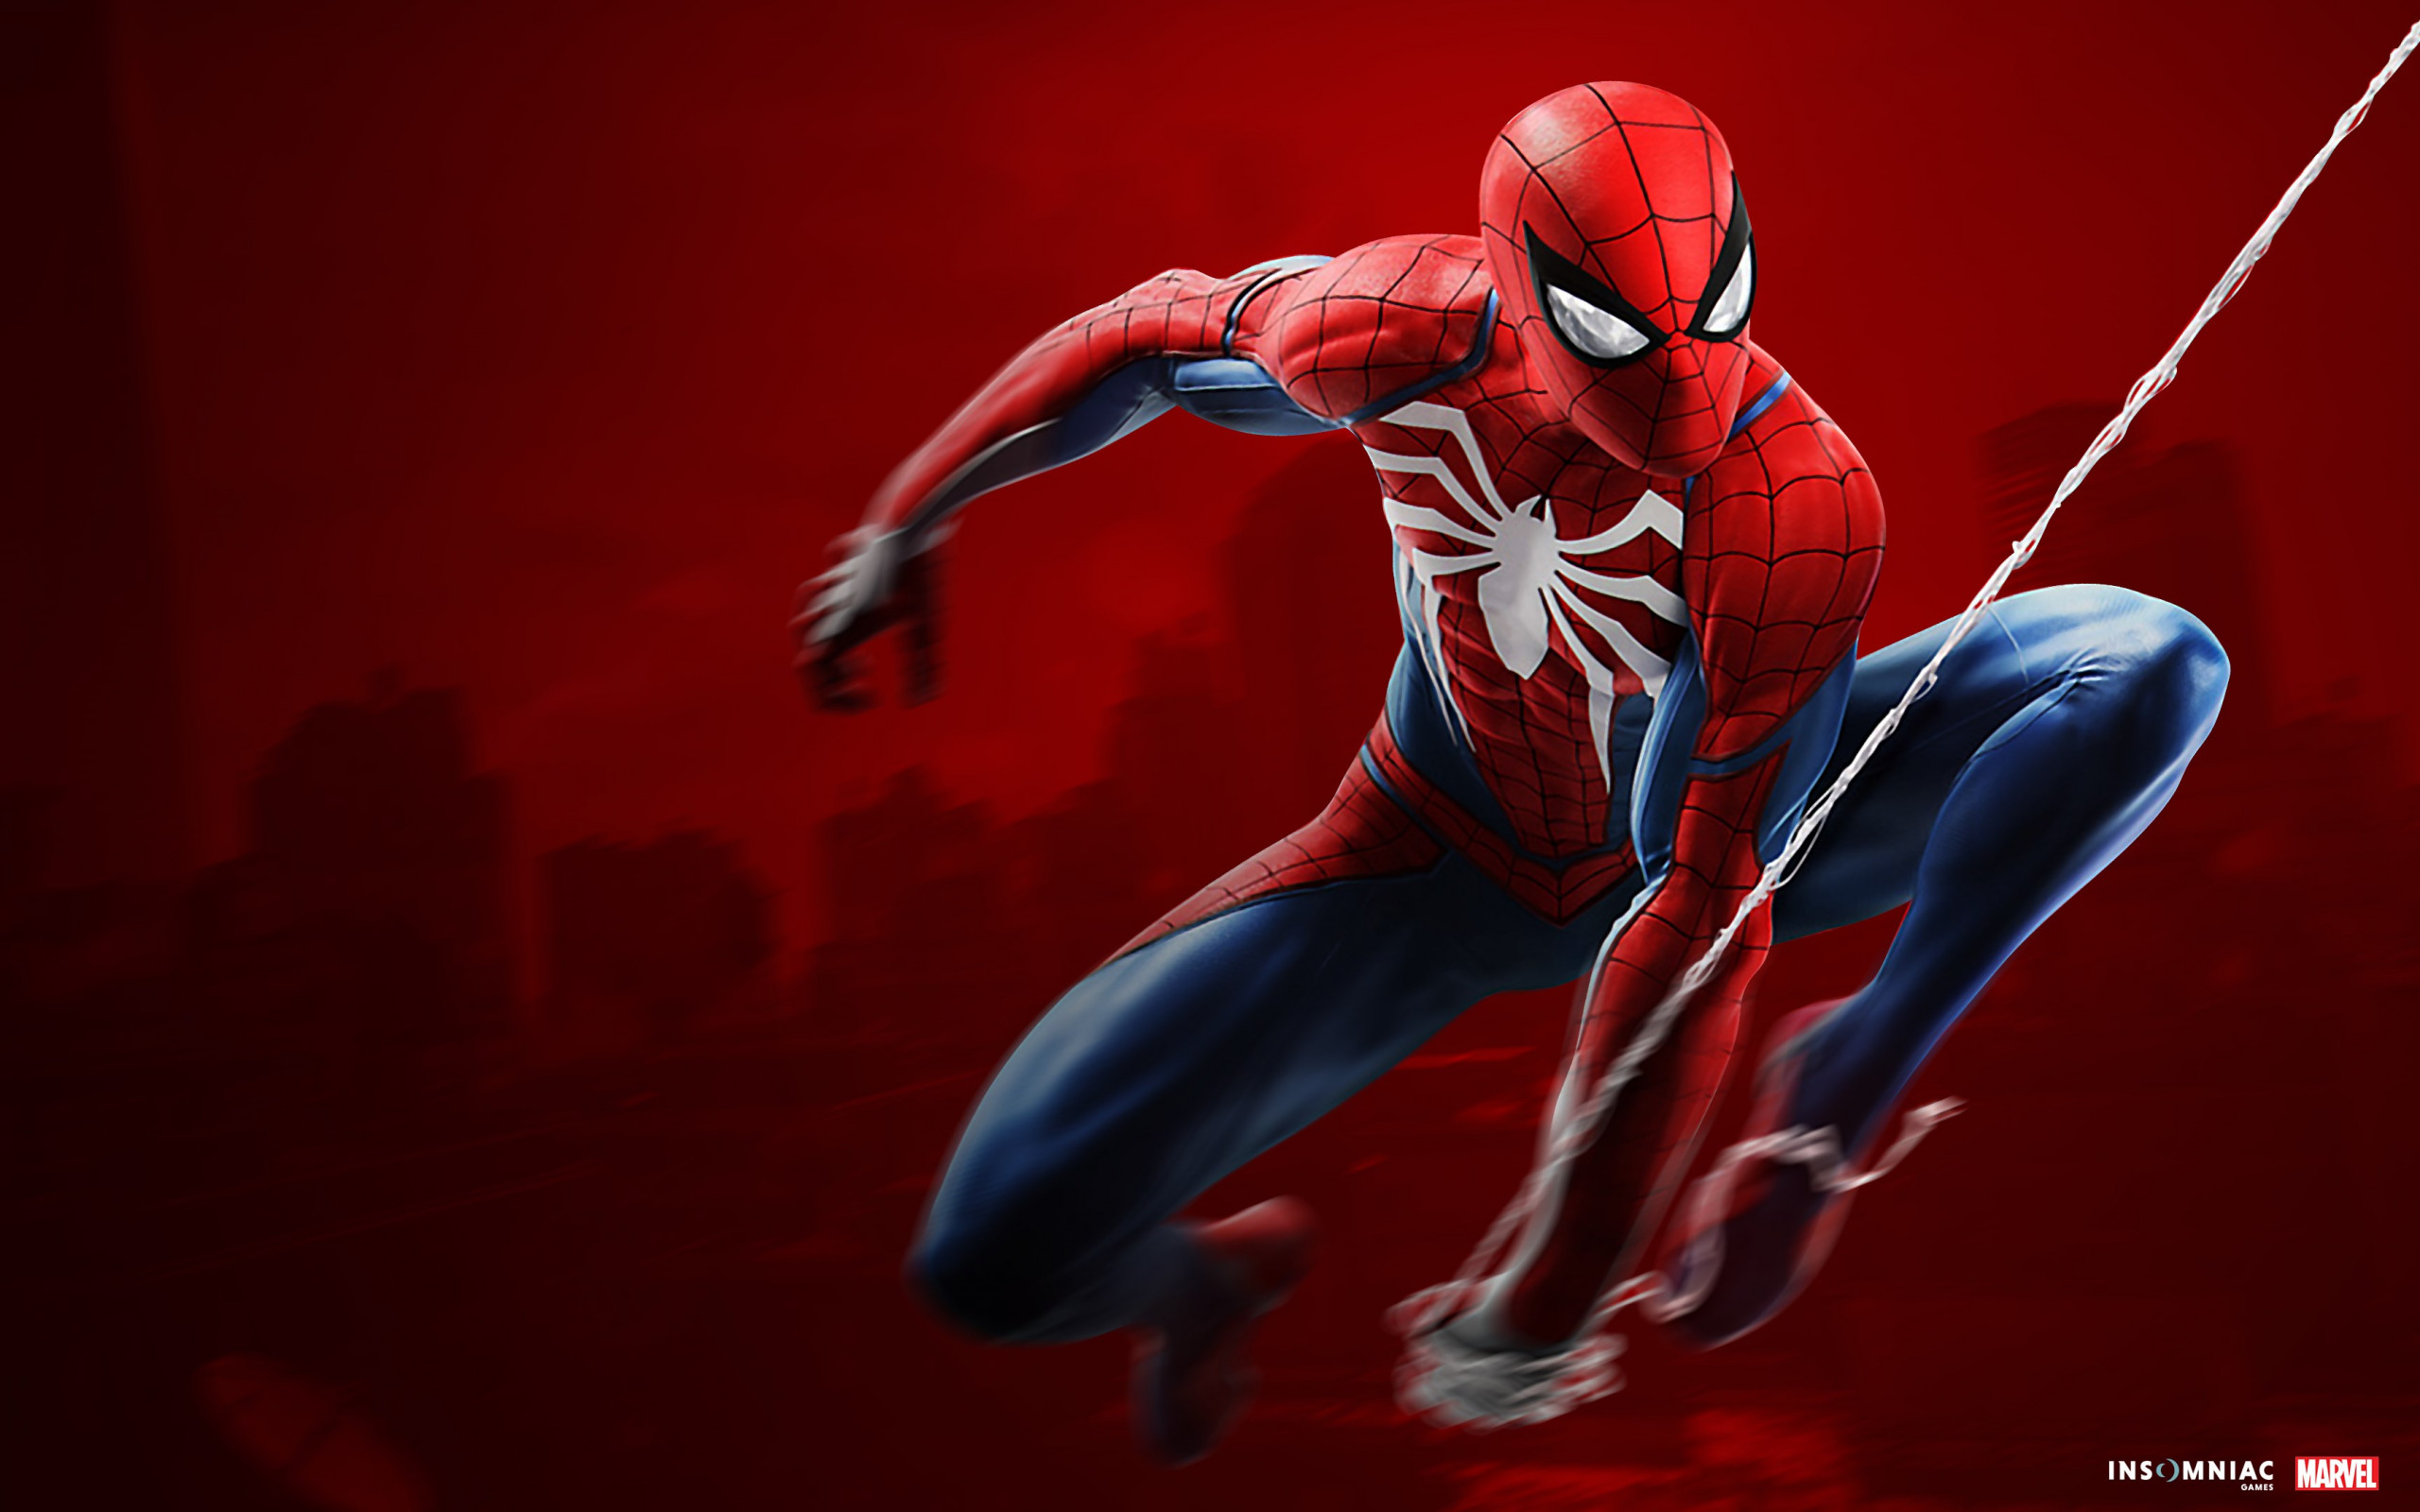 Spider Man game on PS4 wallpaper 2560x1600